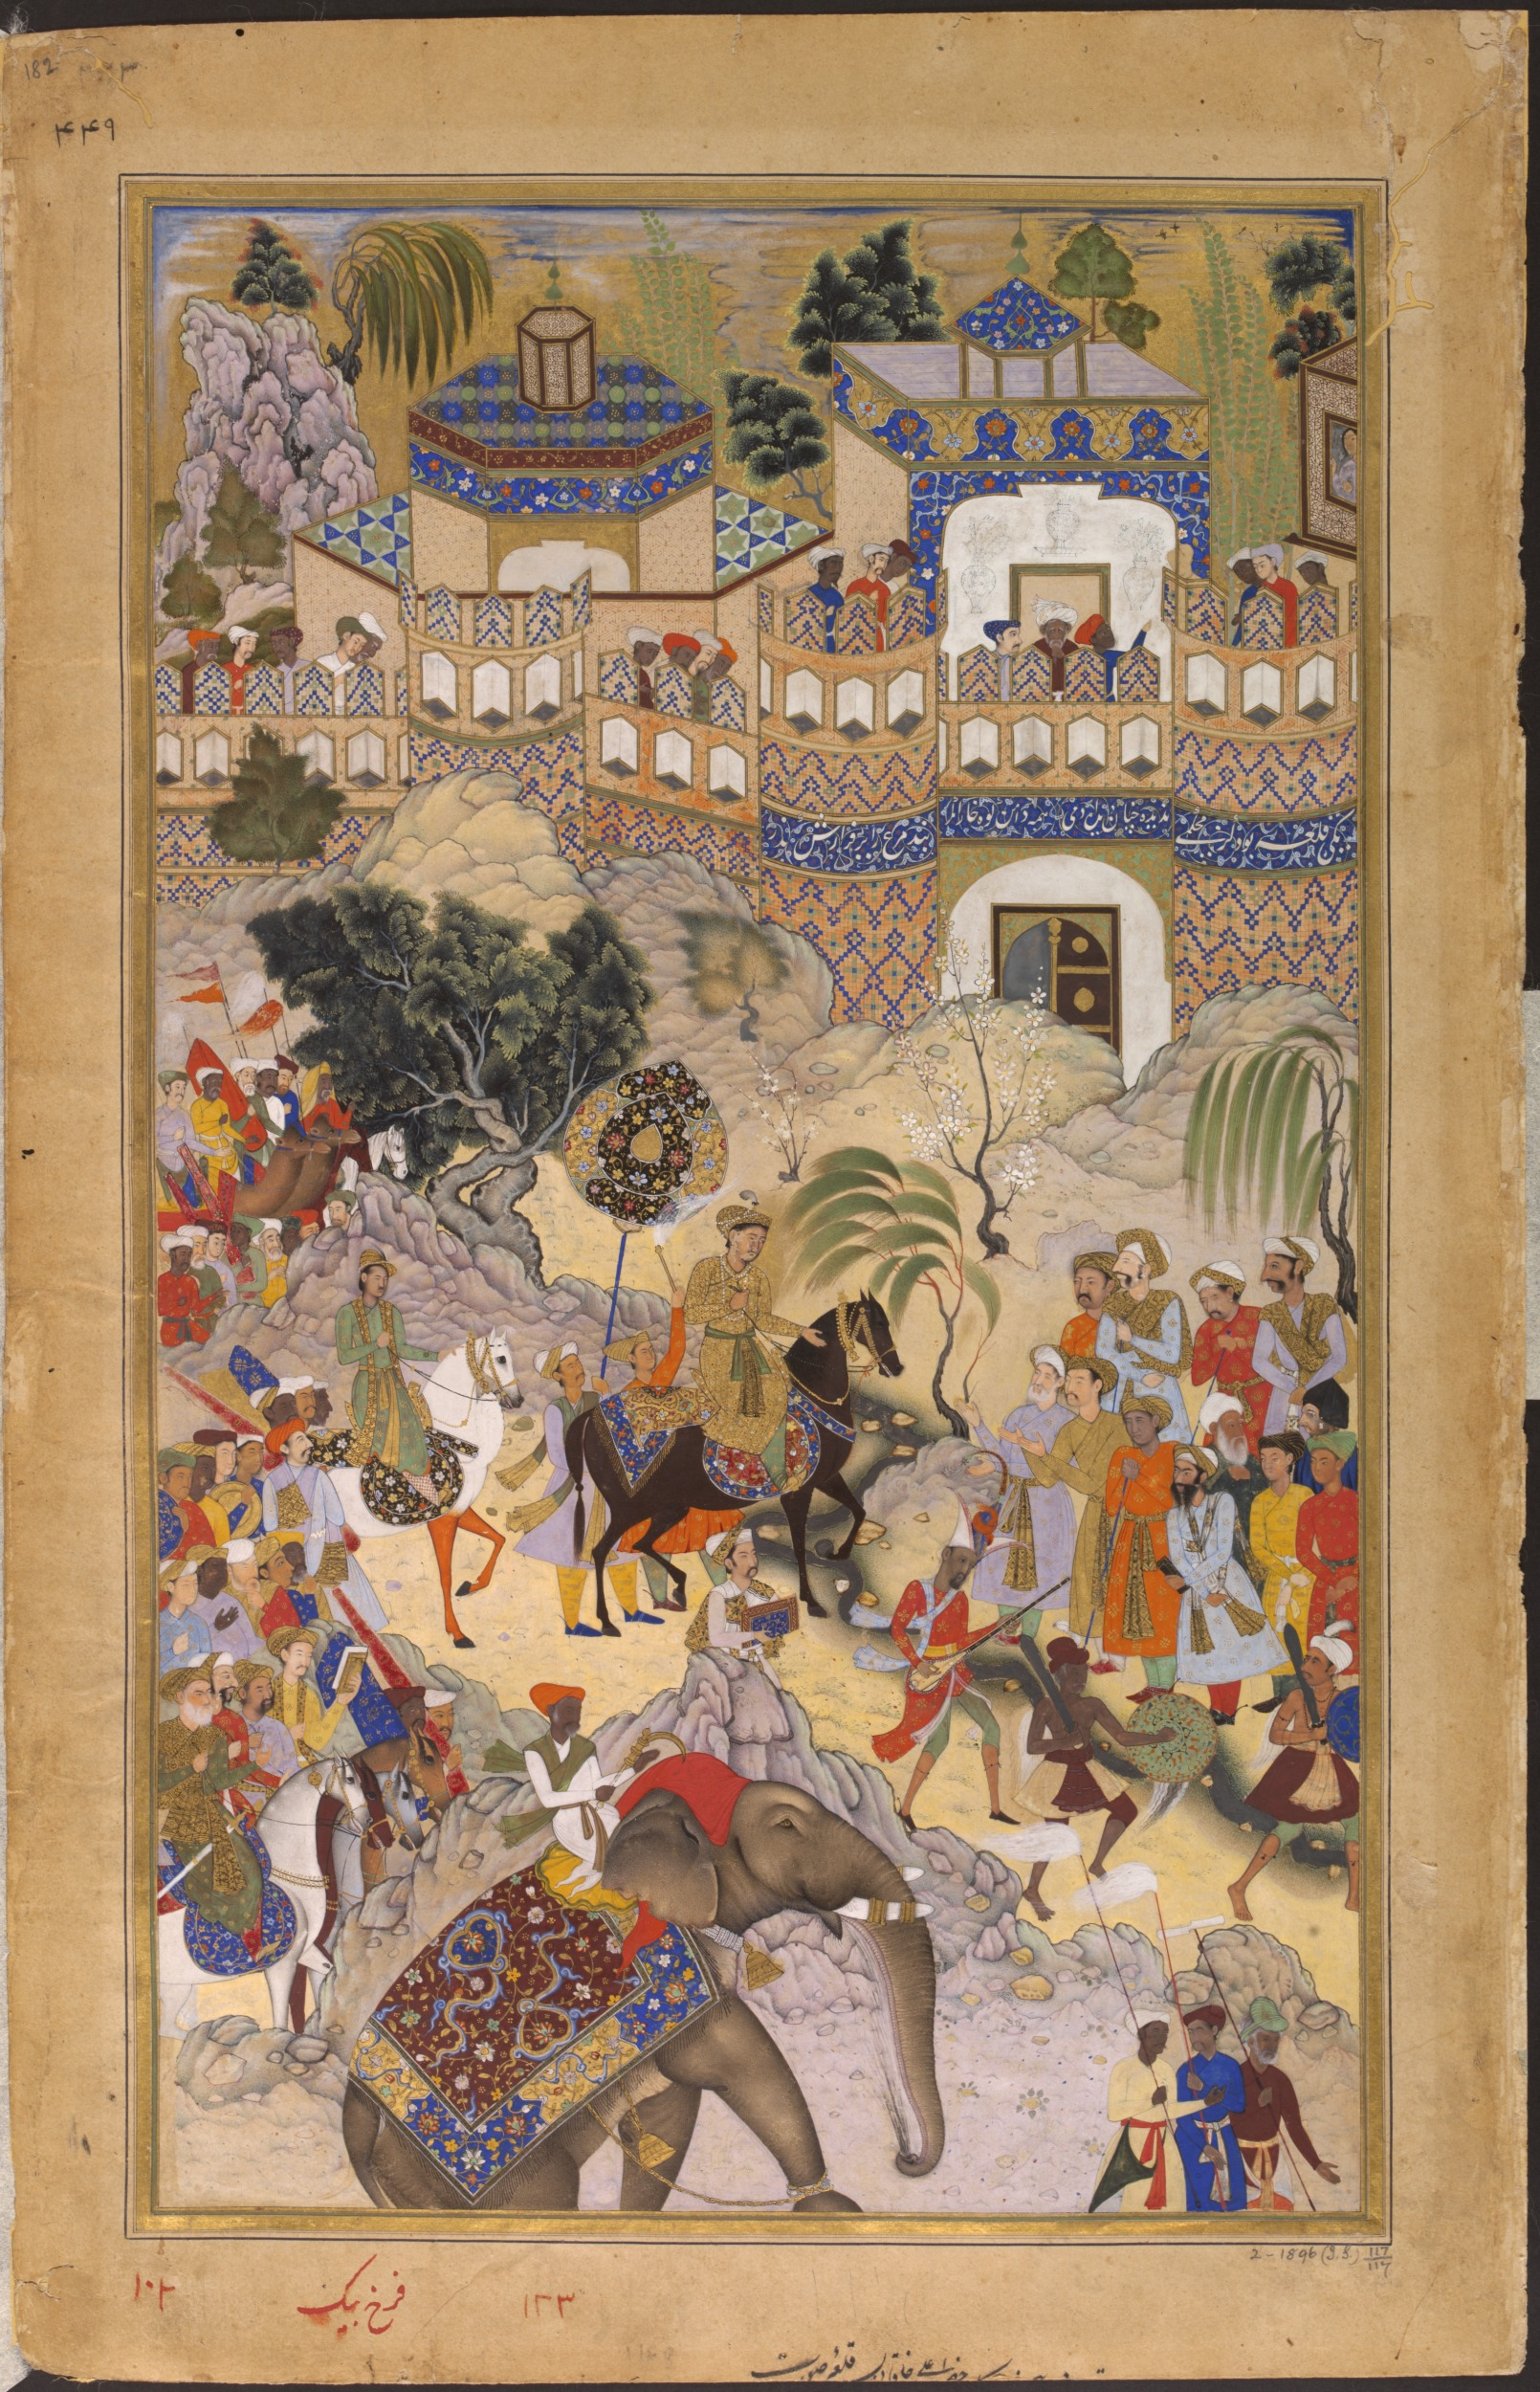 Akbar conquest in Gujarat